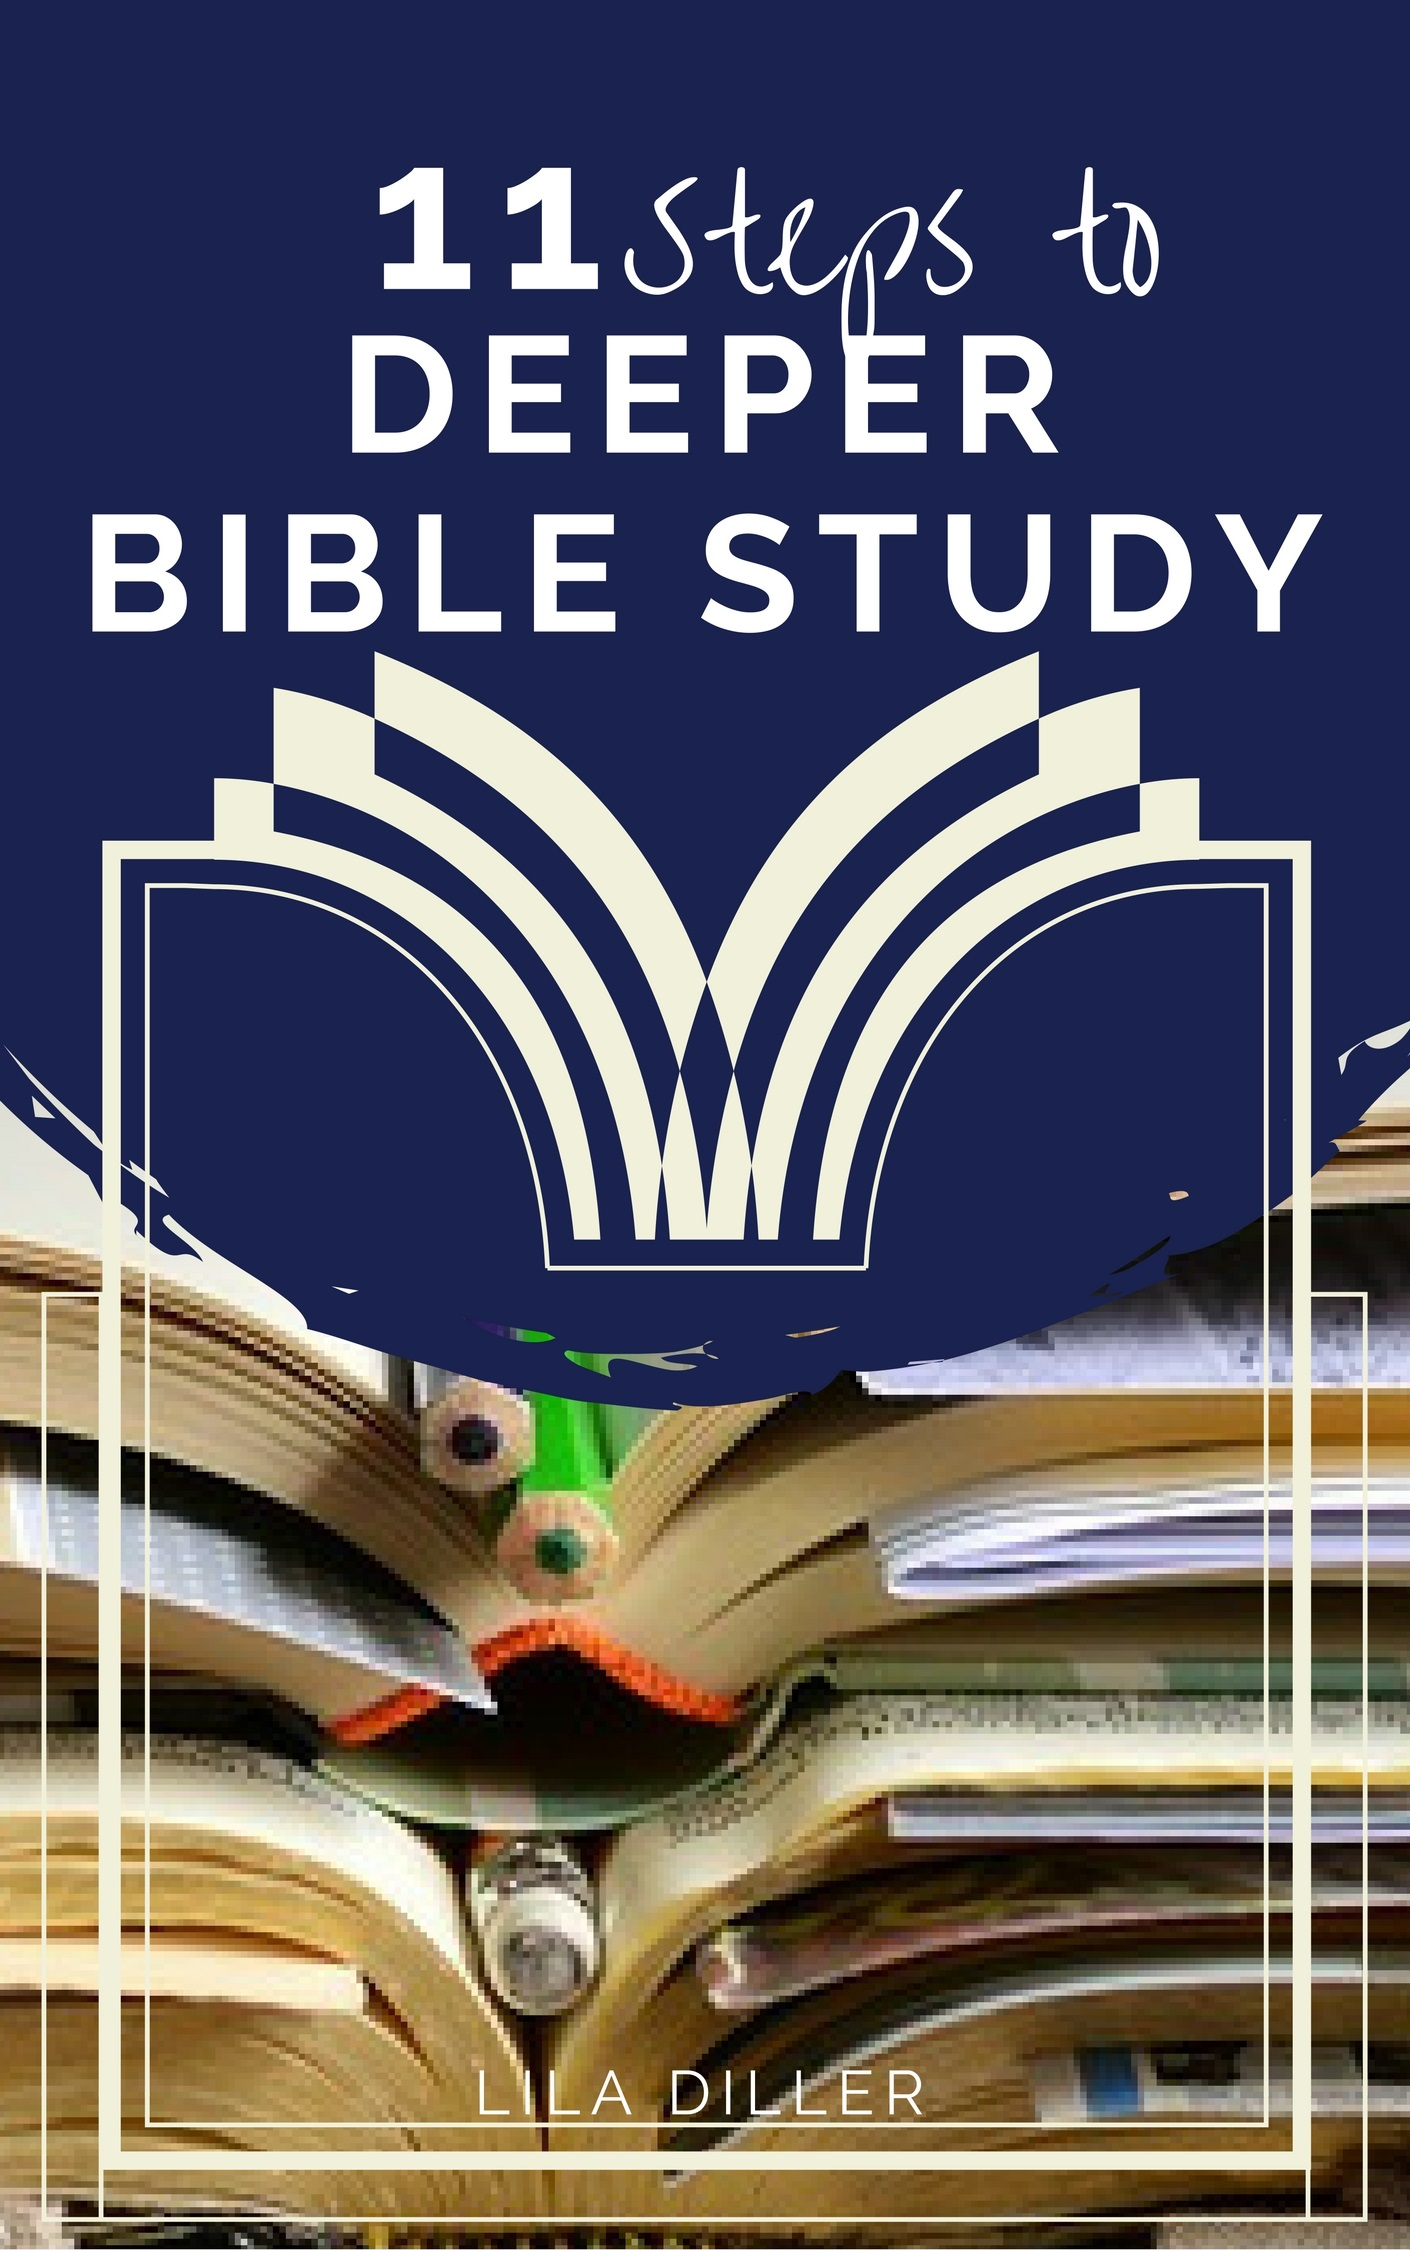 11 Steps to Deeper Bible Study checklist